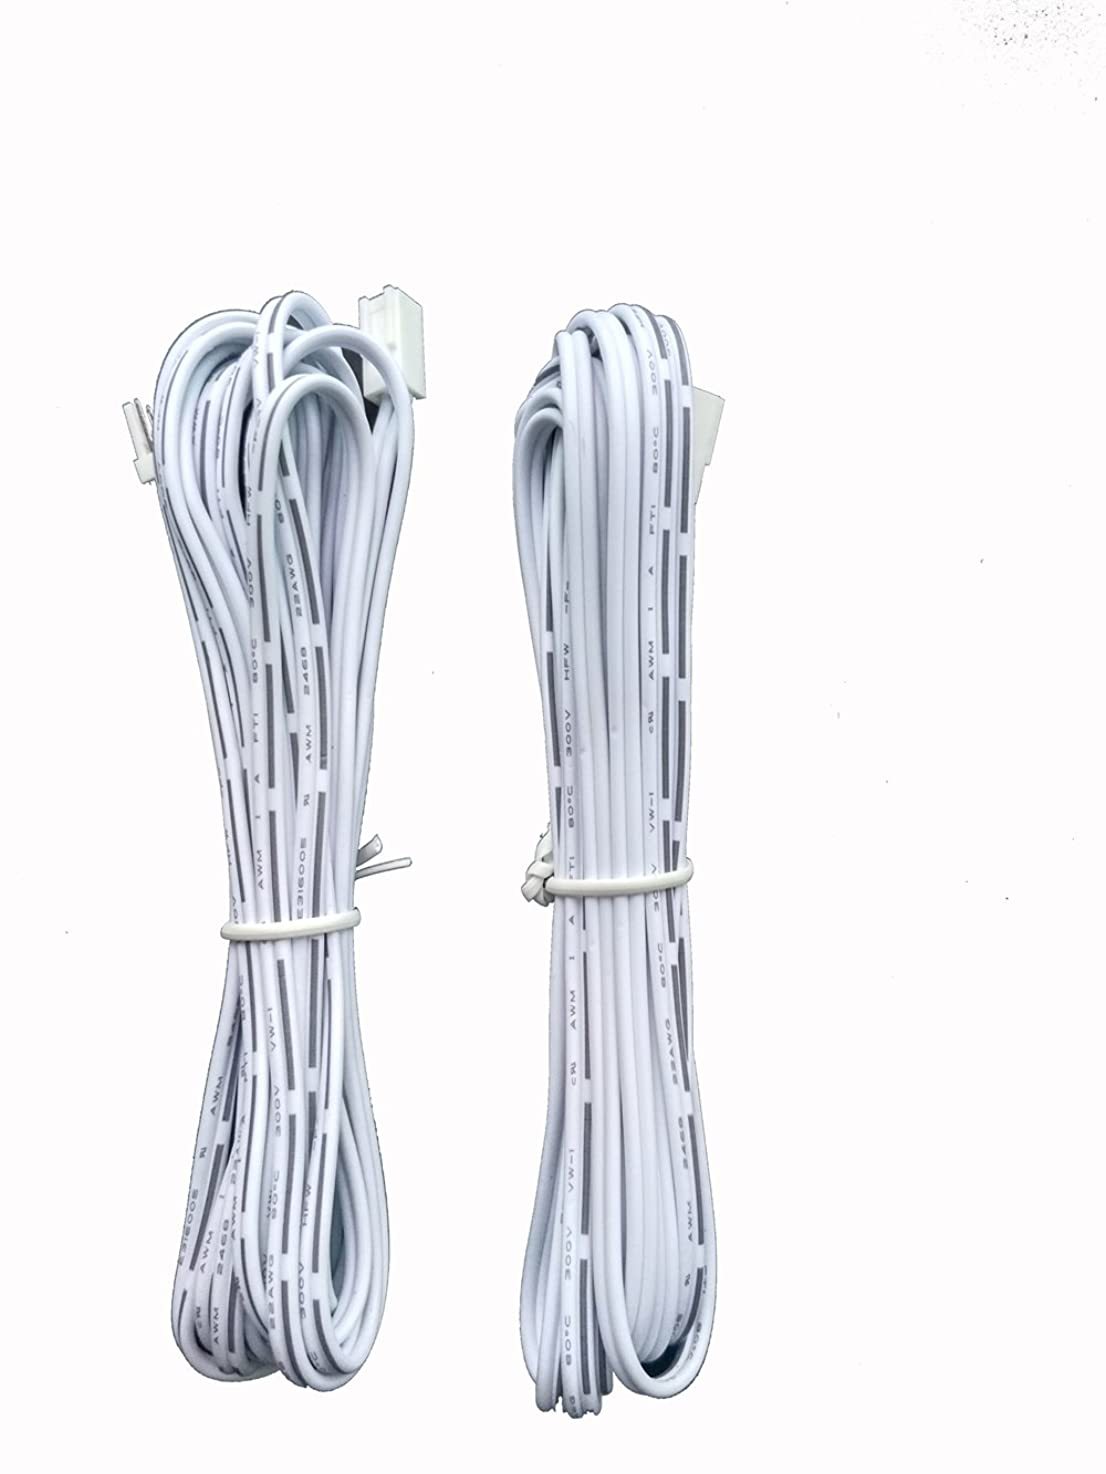 Xking 2Pcs 3m/9.8 Ft 2-Pin Male and Female Cable Plug Connector Extension Wire, 2510 Port Extension Cable, 2.54mm Pitch, LED Cabinet Light Extension Cord